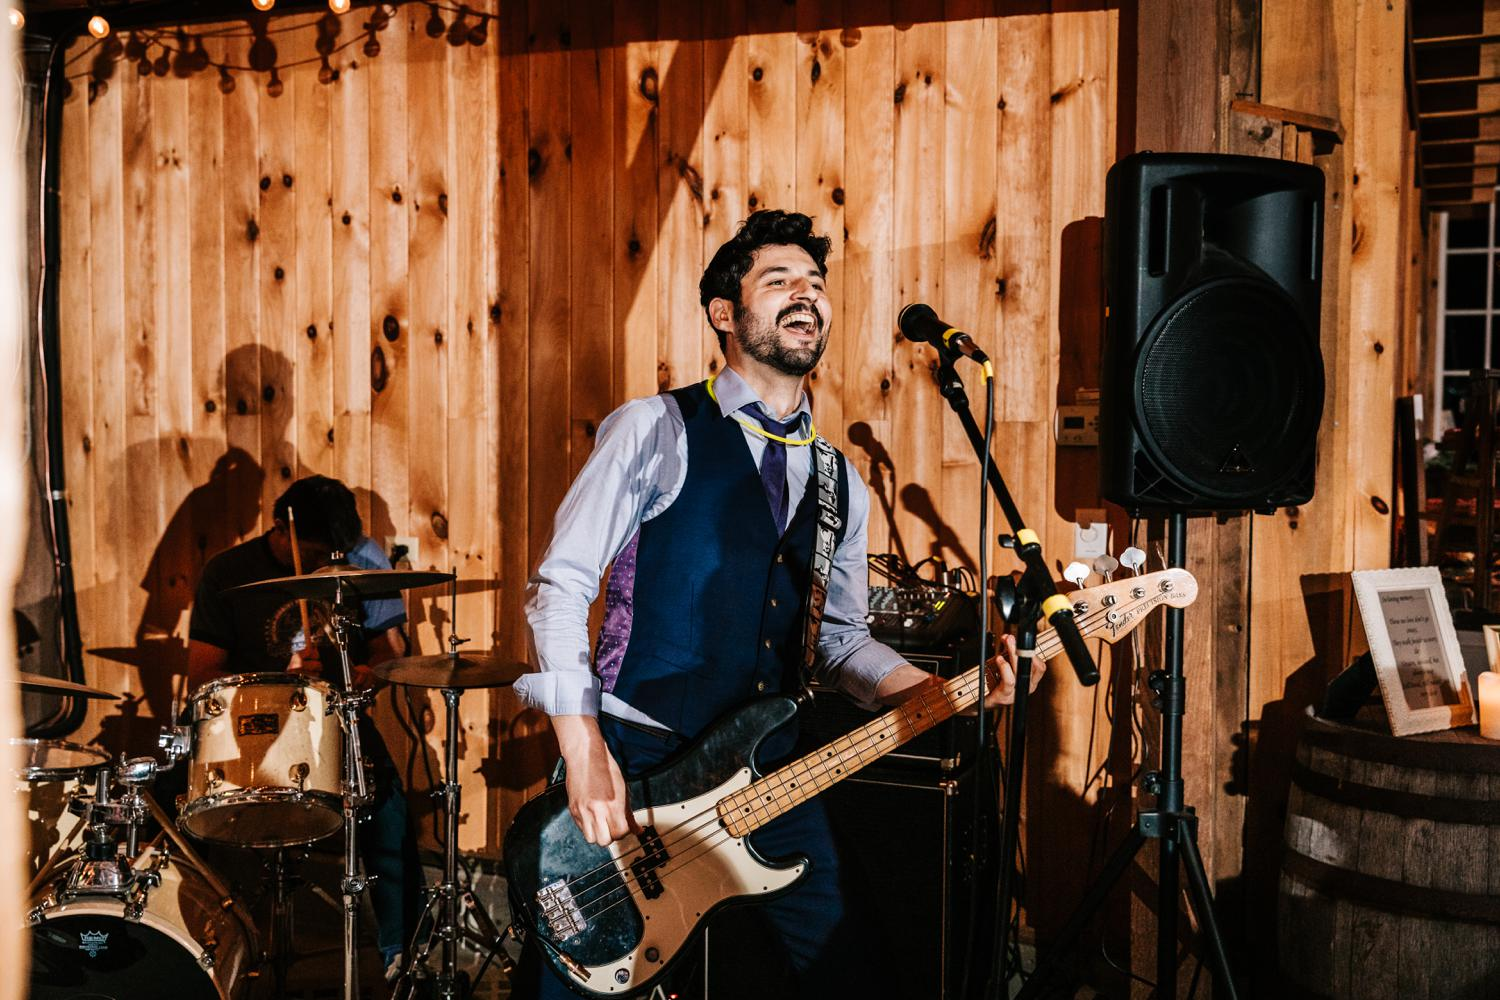 Groom playing guitar at music themed Albuquerque wedding reception